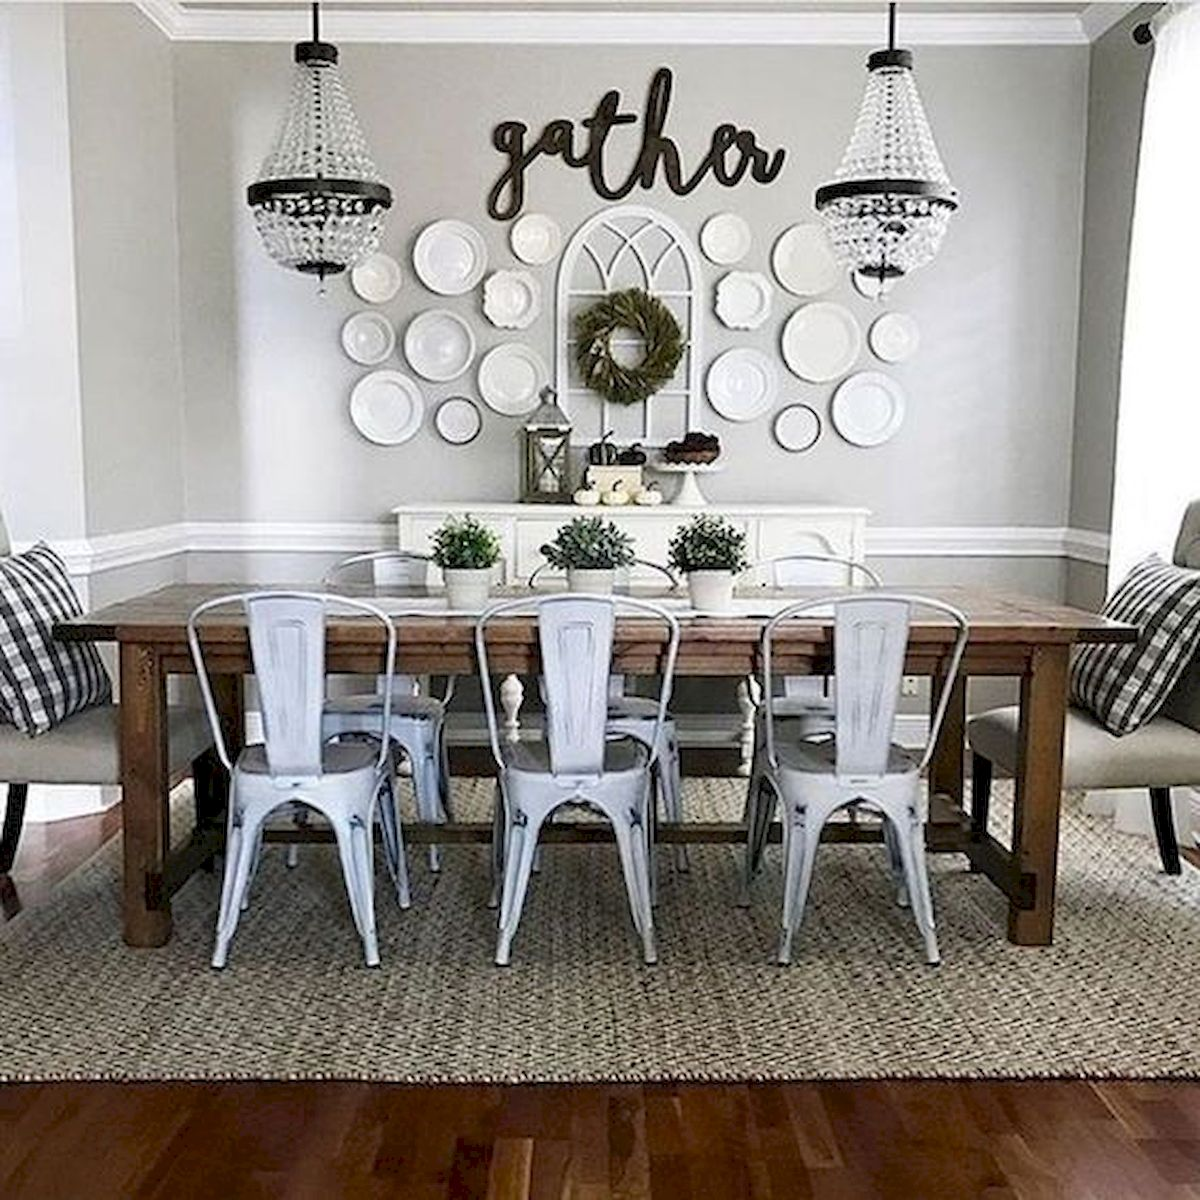 51 Farmhouse Wall Decor Ideas for Dinning Room (1)